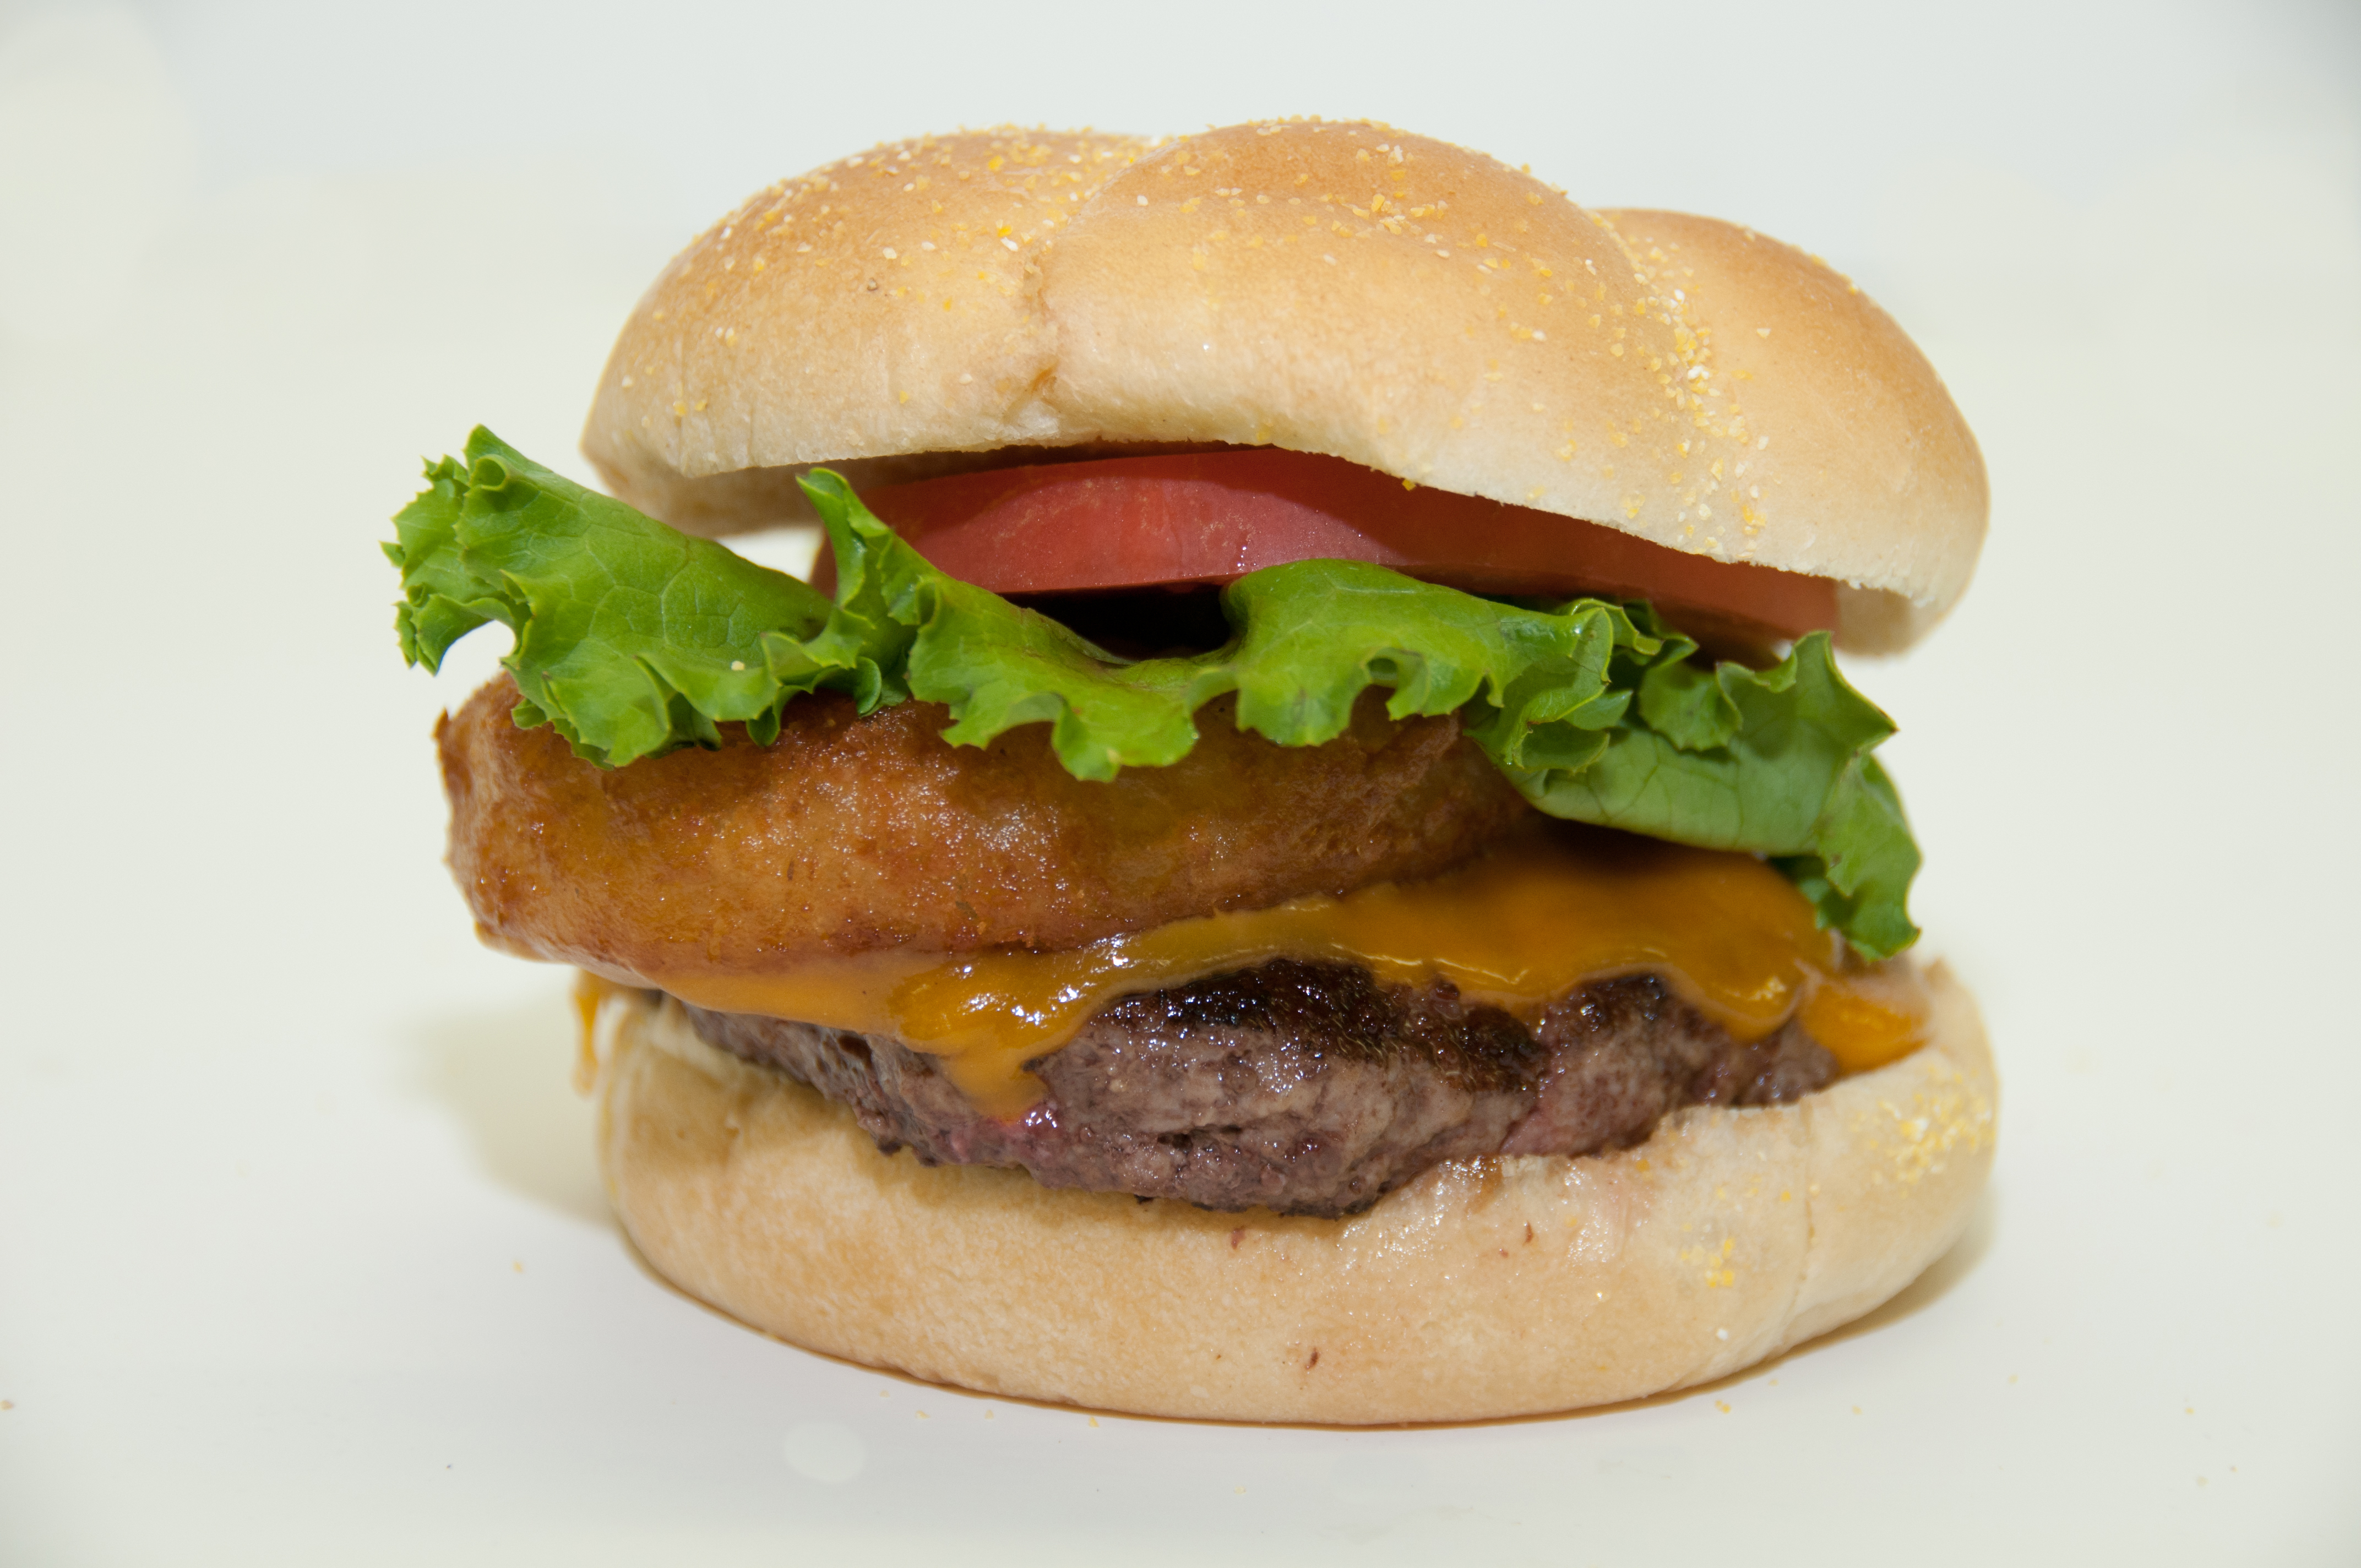 http://www.memorialcoliseum.com/images/Images/Where_to_Eat_Images/Appleseed_Buger/DSC_0220.jpg